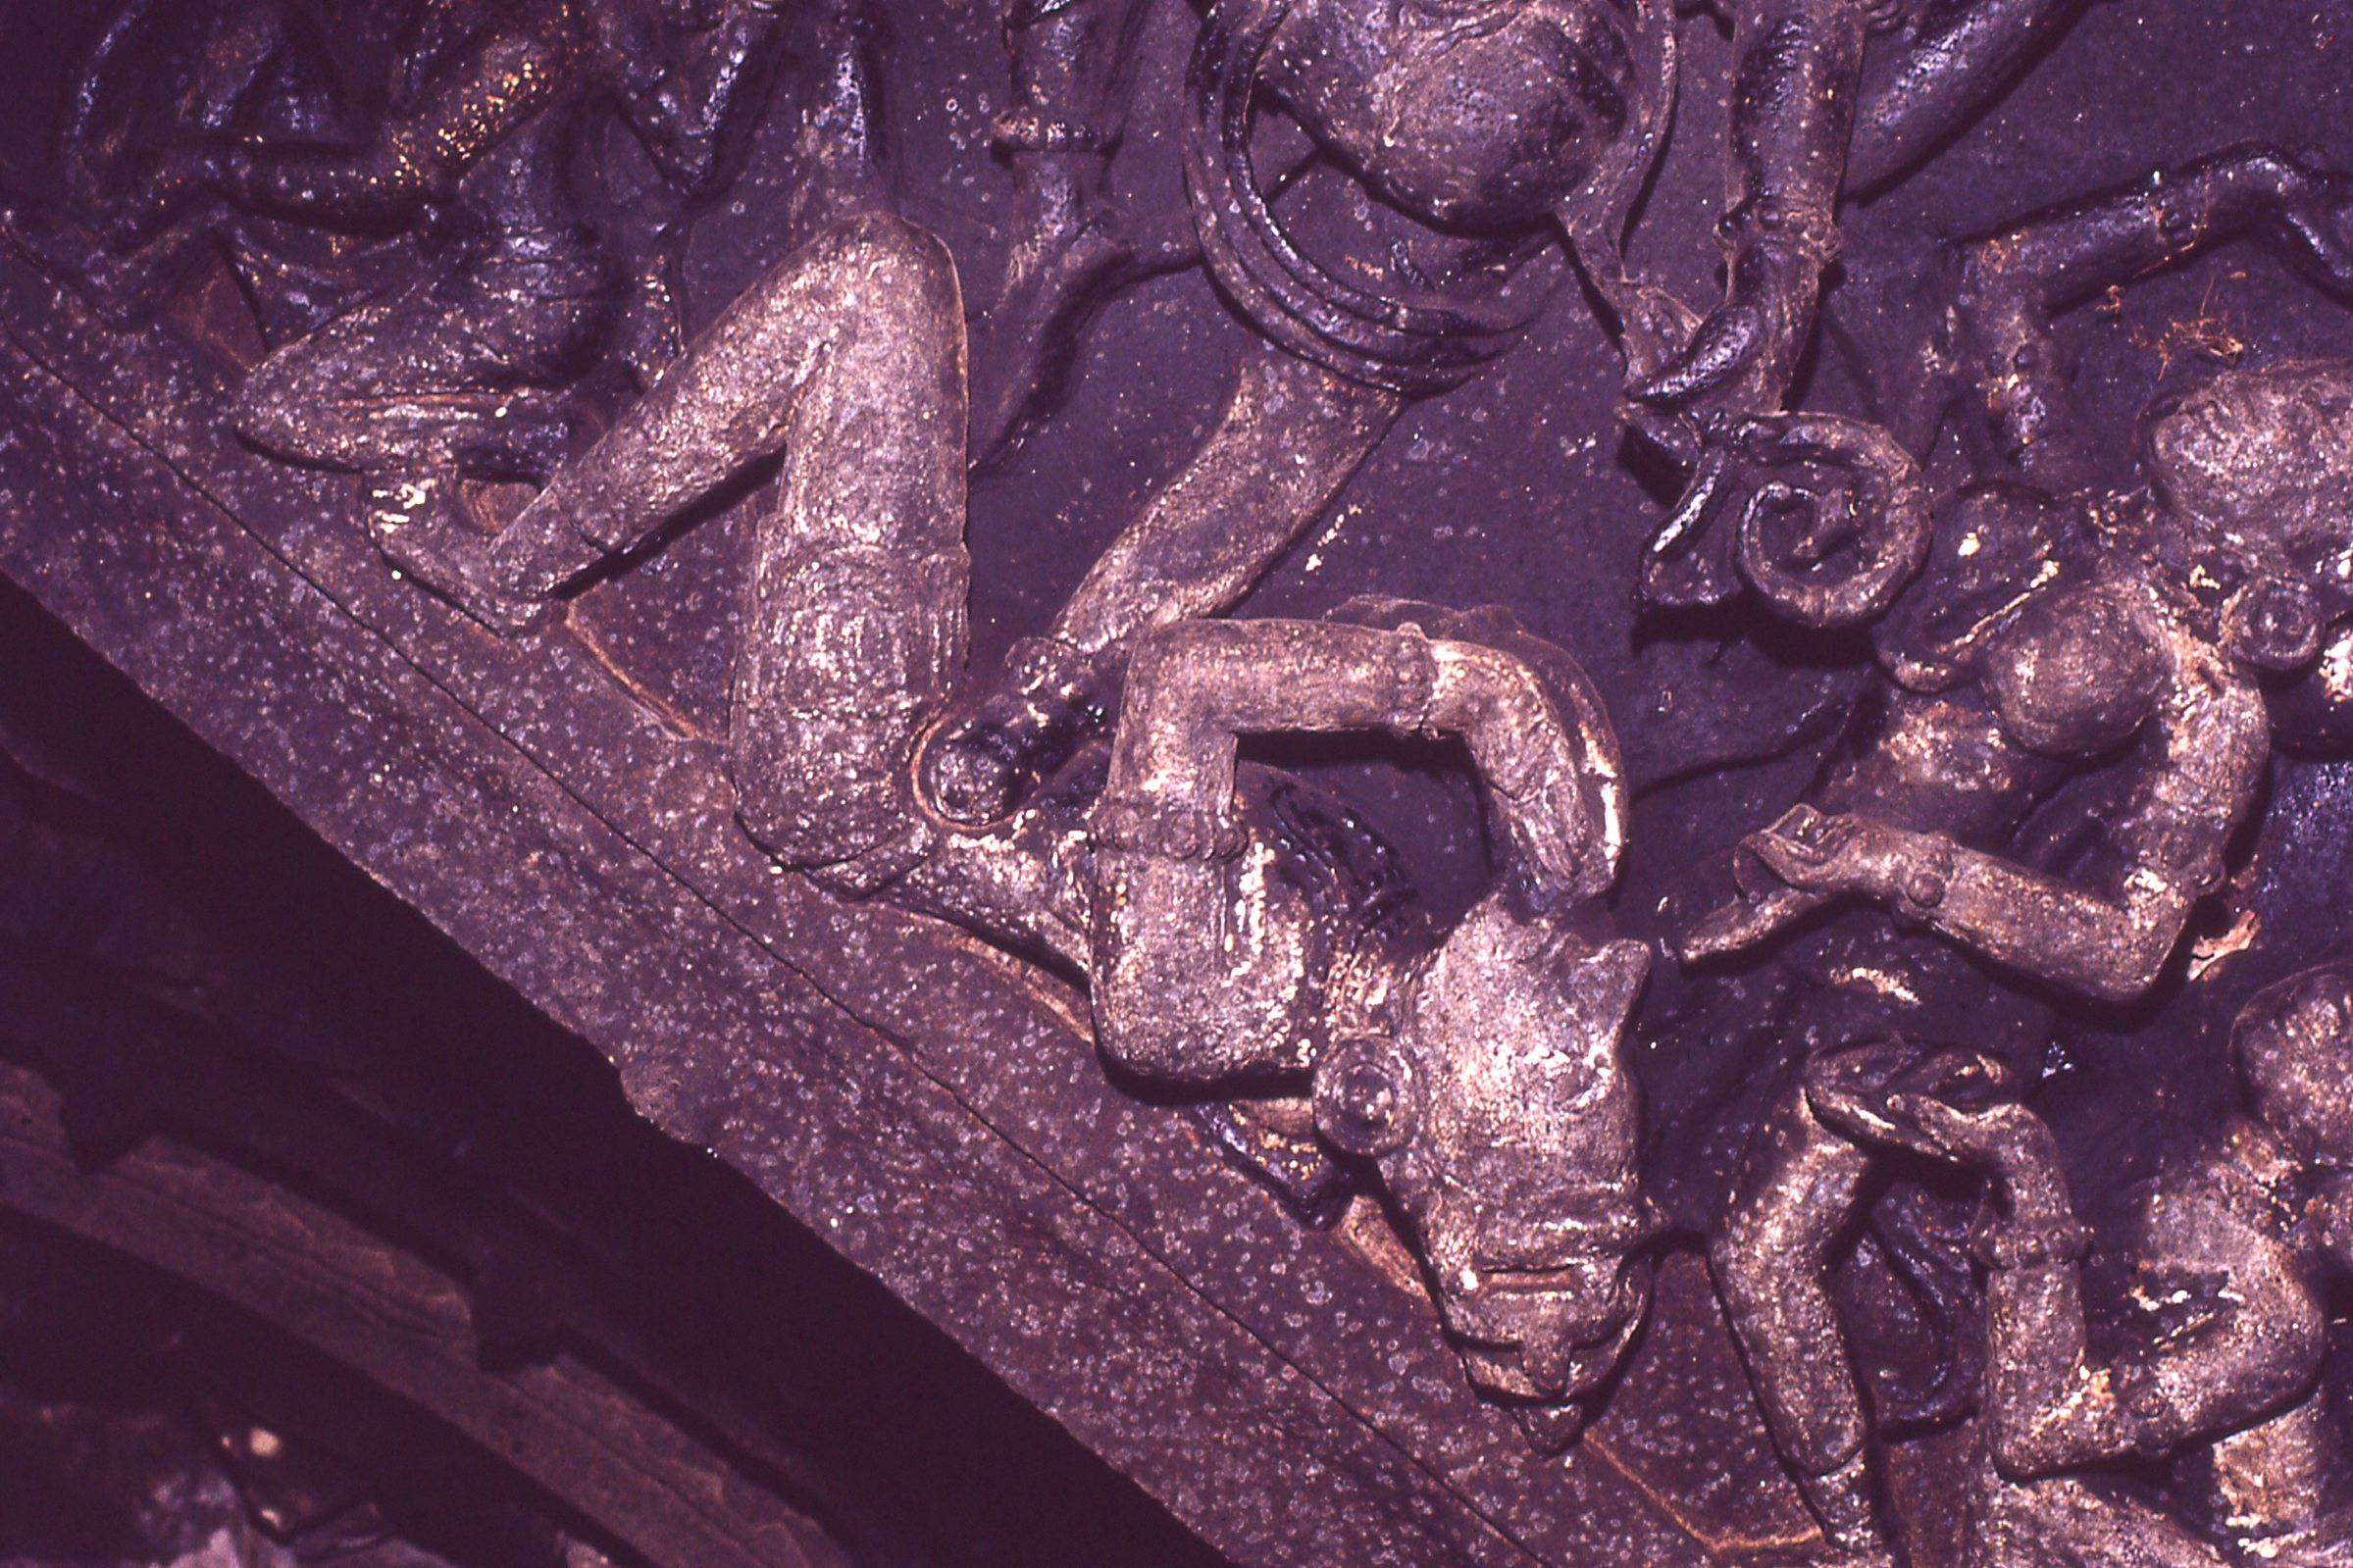 killing-of-lonasur-depiction